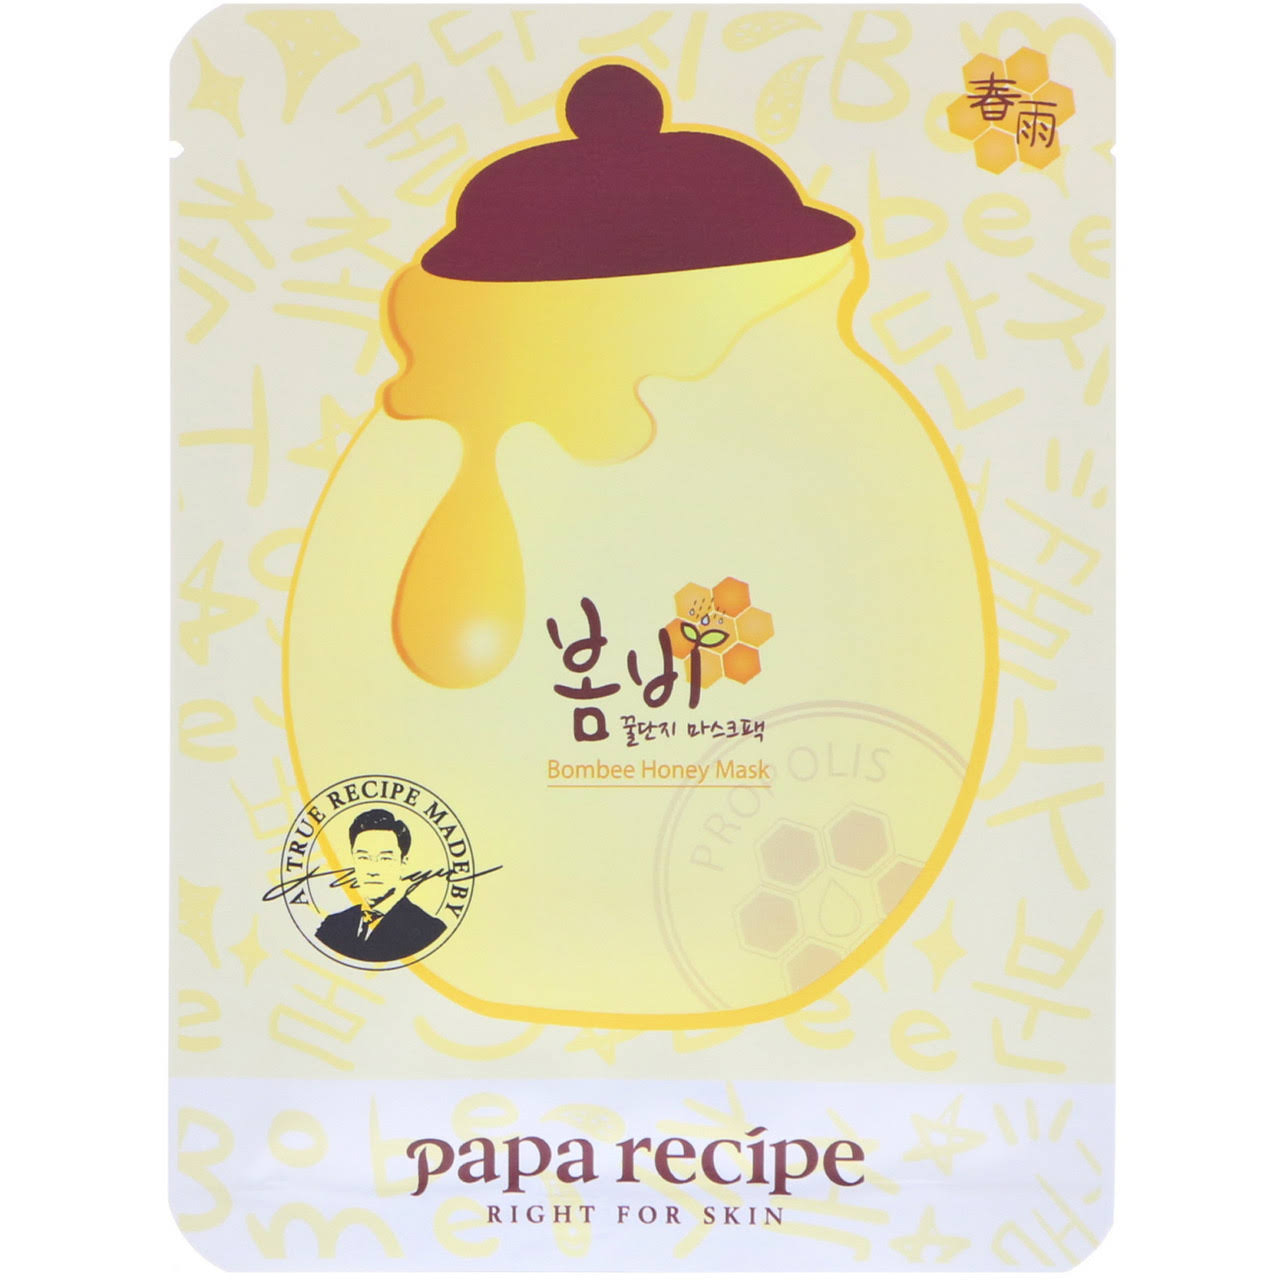 Papa Recipe Bombee Honey Mask - 10 Sheets